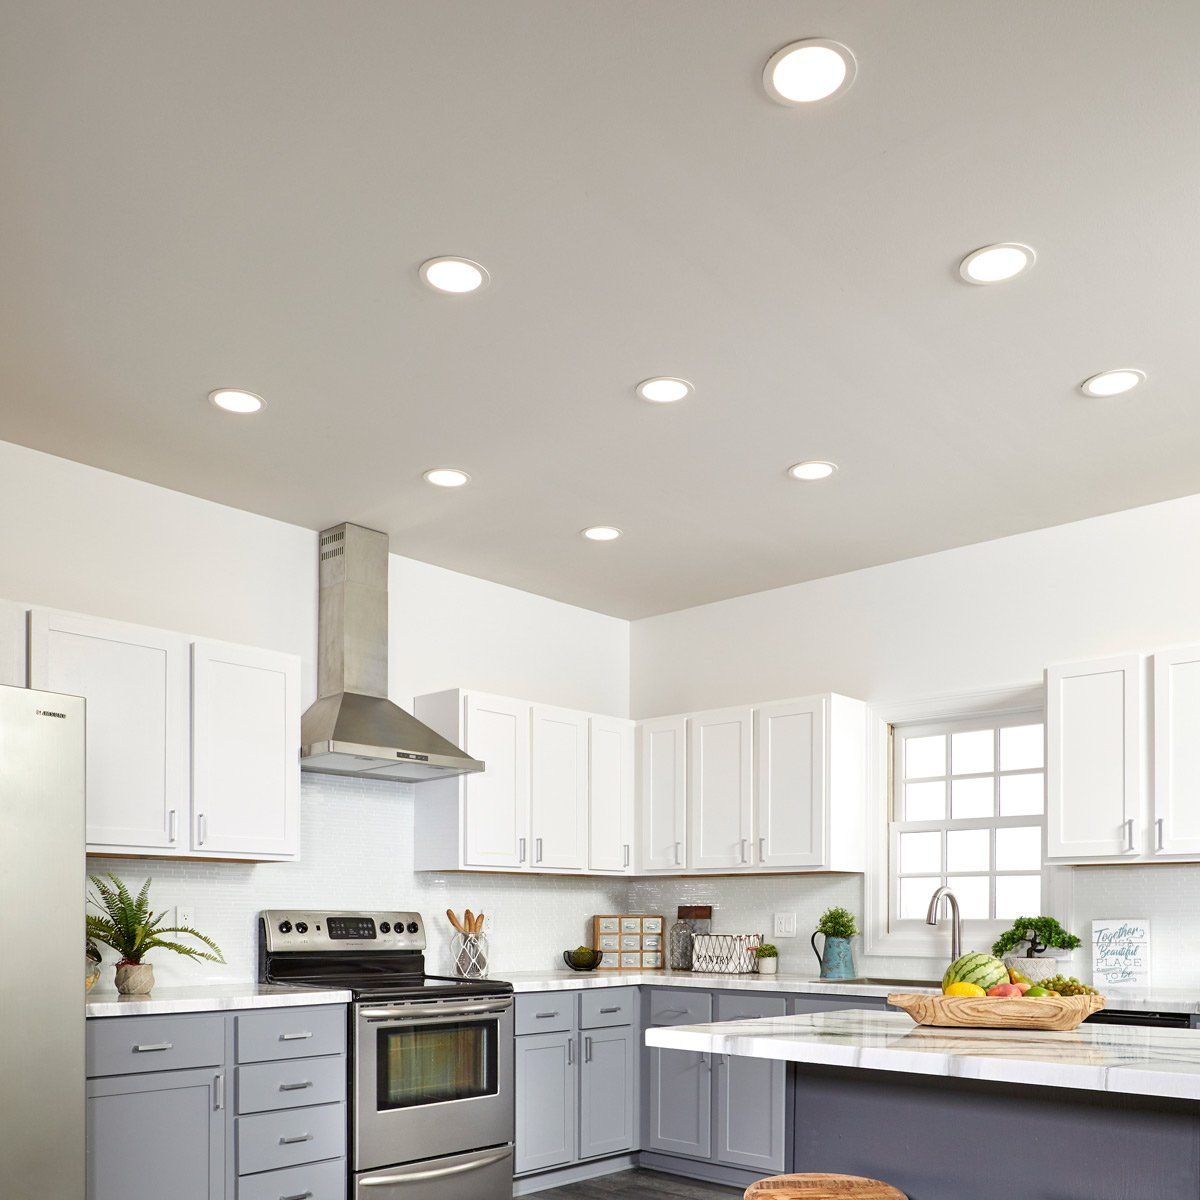 How To Install Low Profile Led Lights In Your Kitchen Kitchen Ceiling Lights Can Lights In Kitchen Kitchen Ceiling